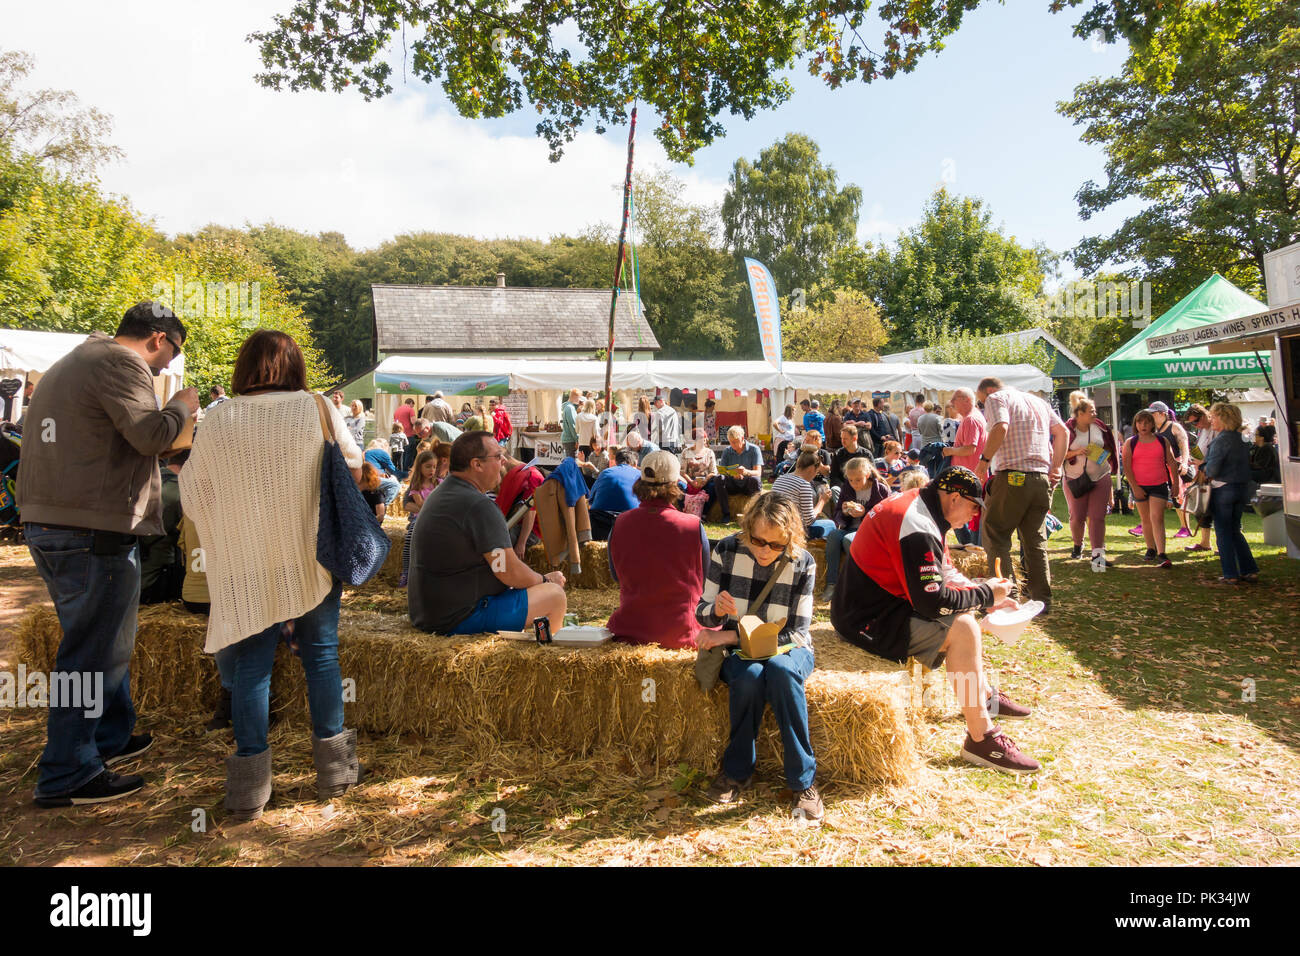 St Fagans, United Kingdom -  July 14, 2017: People sit eating on hay at the Food Festival in St Fagans, Cardiff, Wales - Stock Image